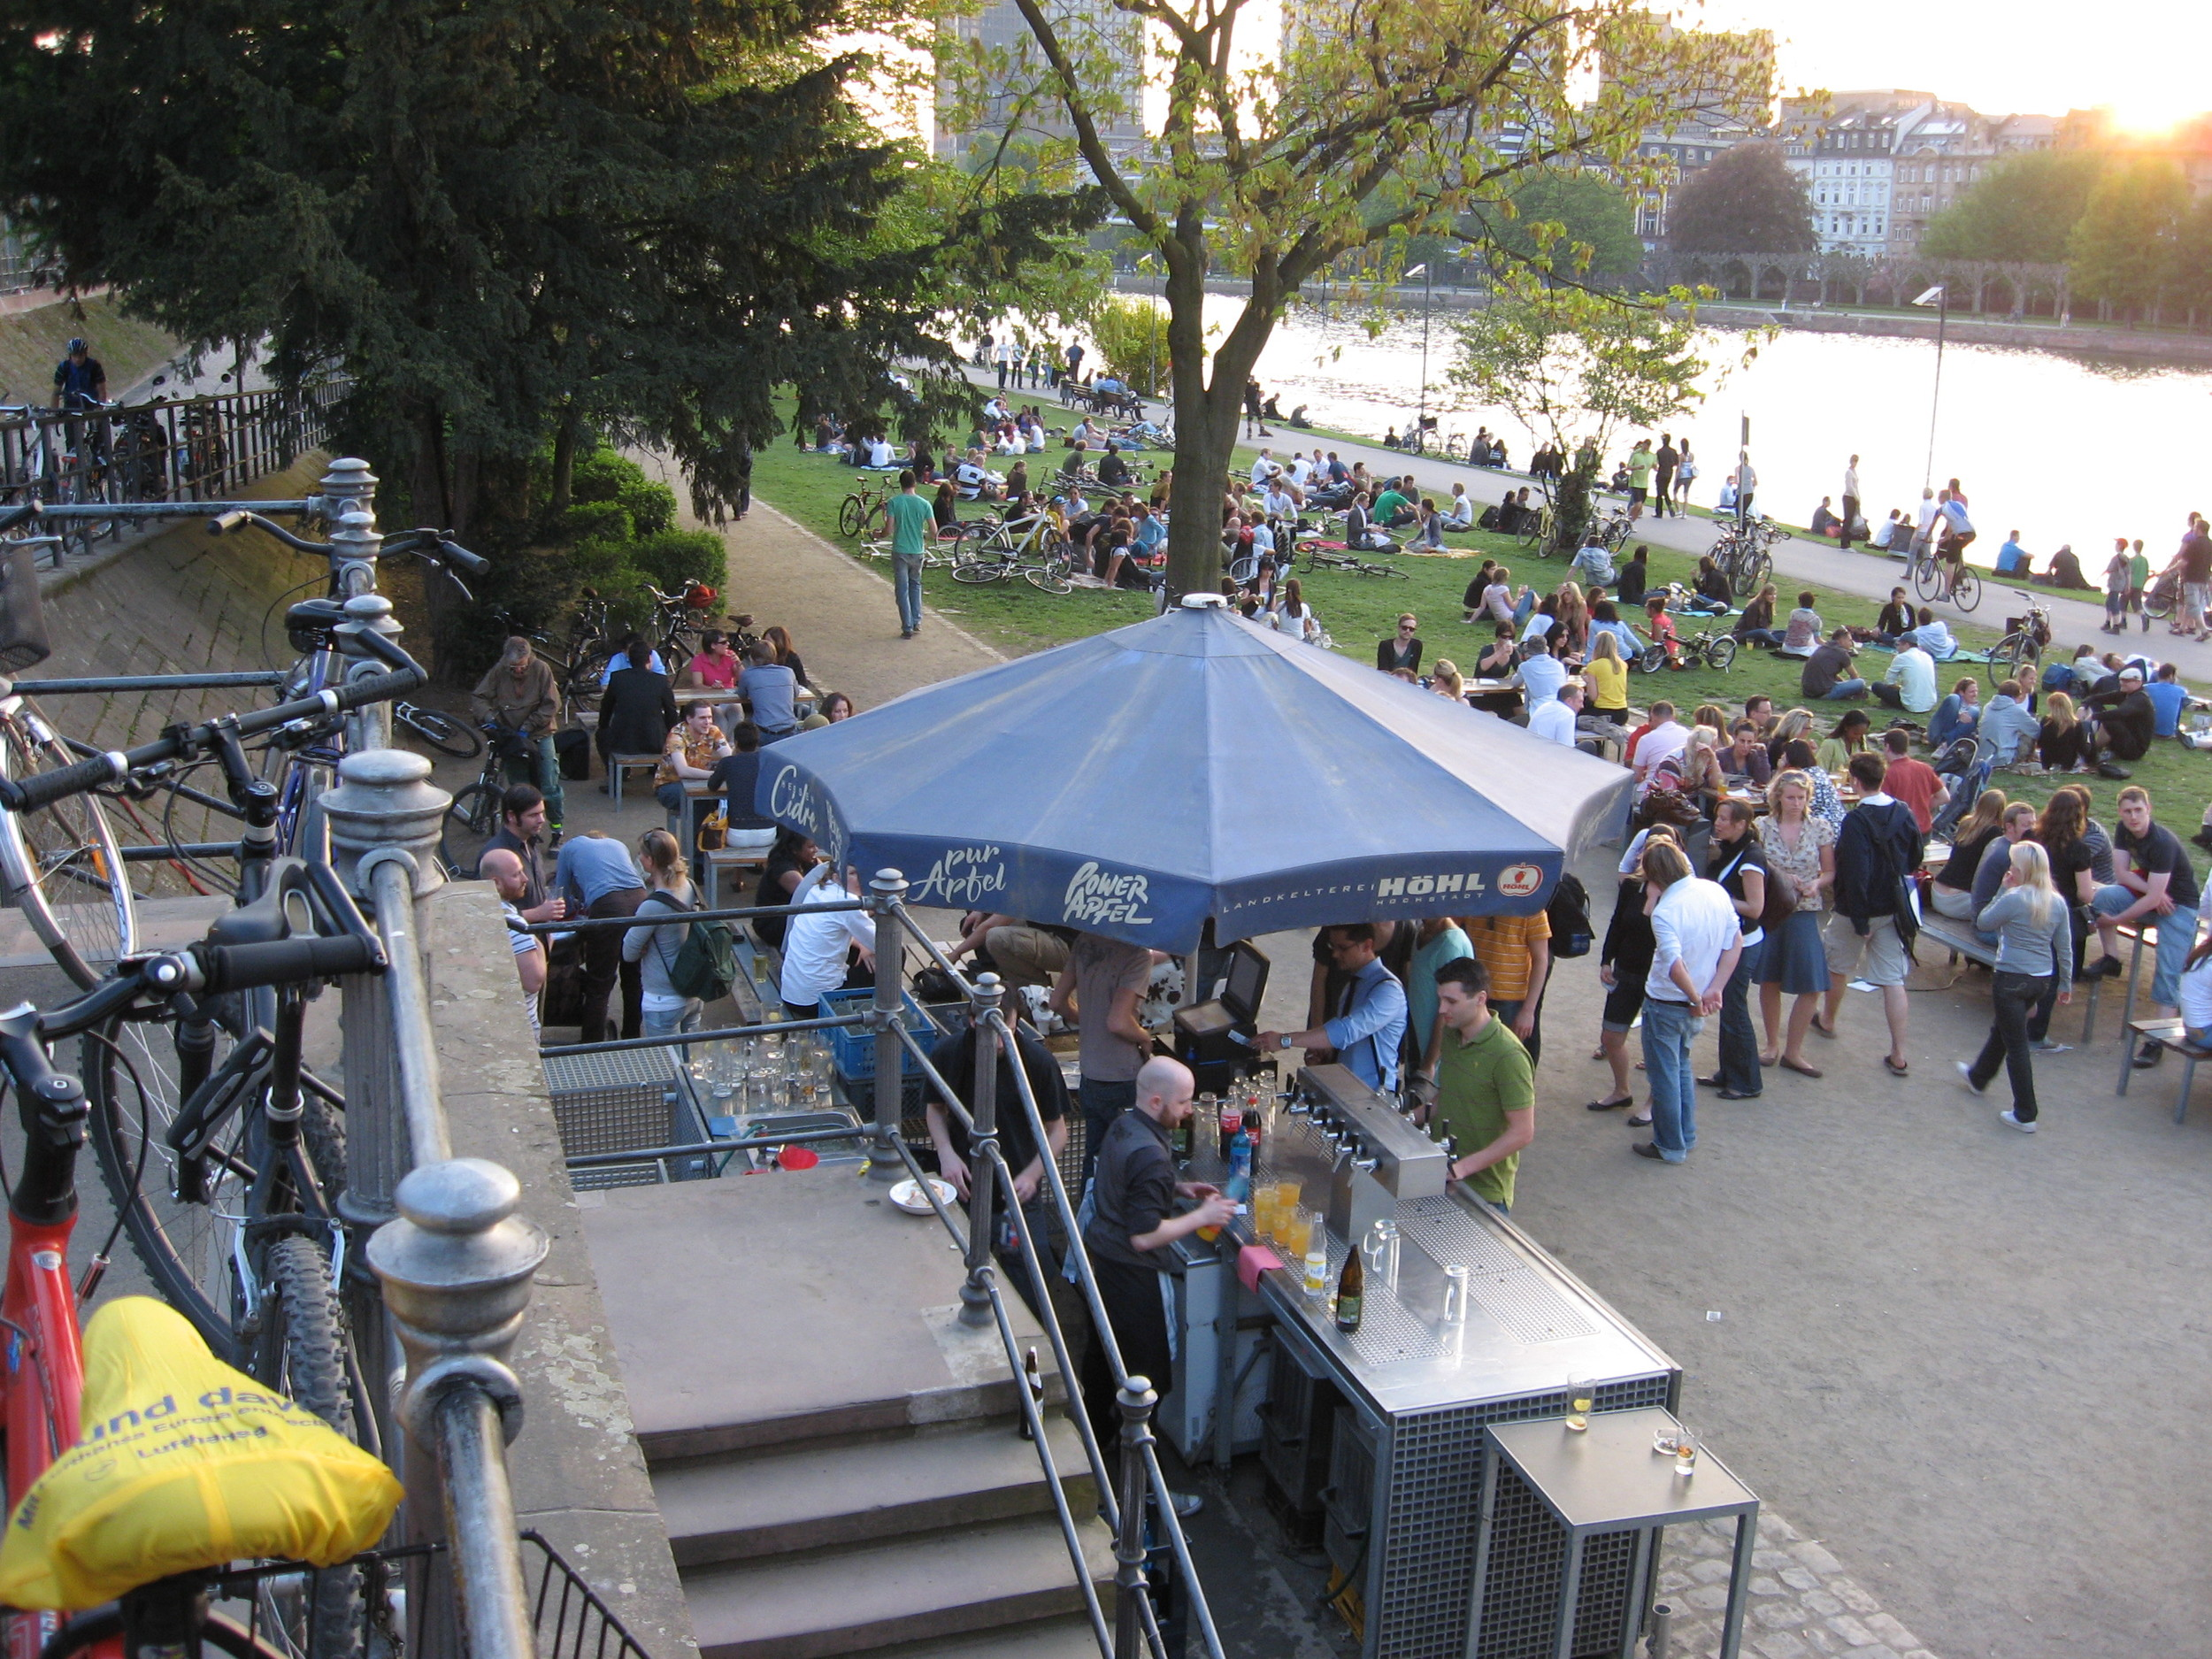 Frankfurt's green beach with beer vendor is just a narrow lawn area between the road above and the pathway along the water.